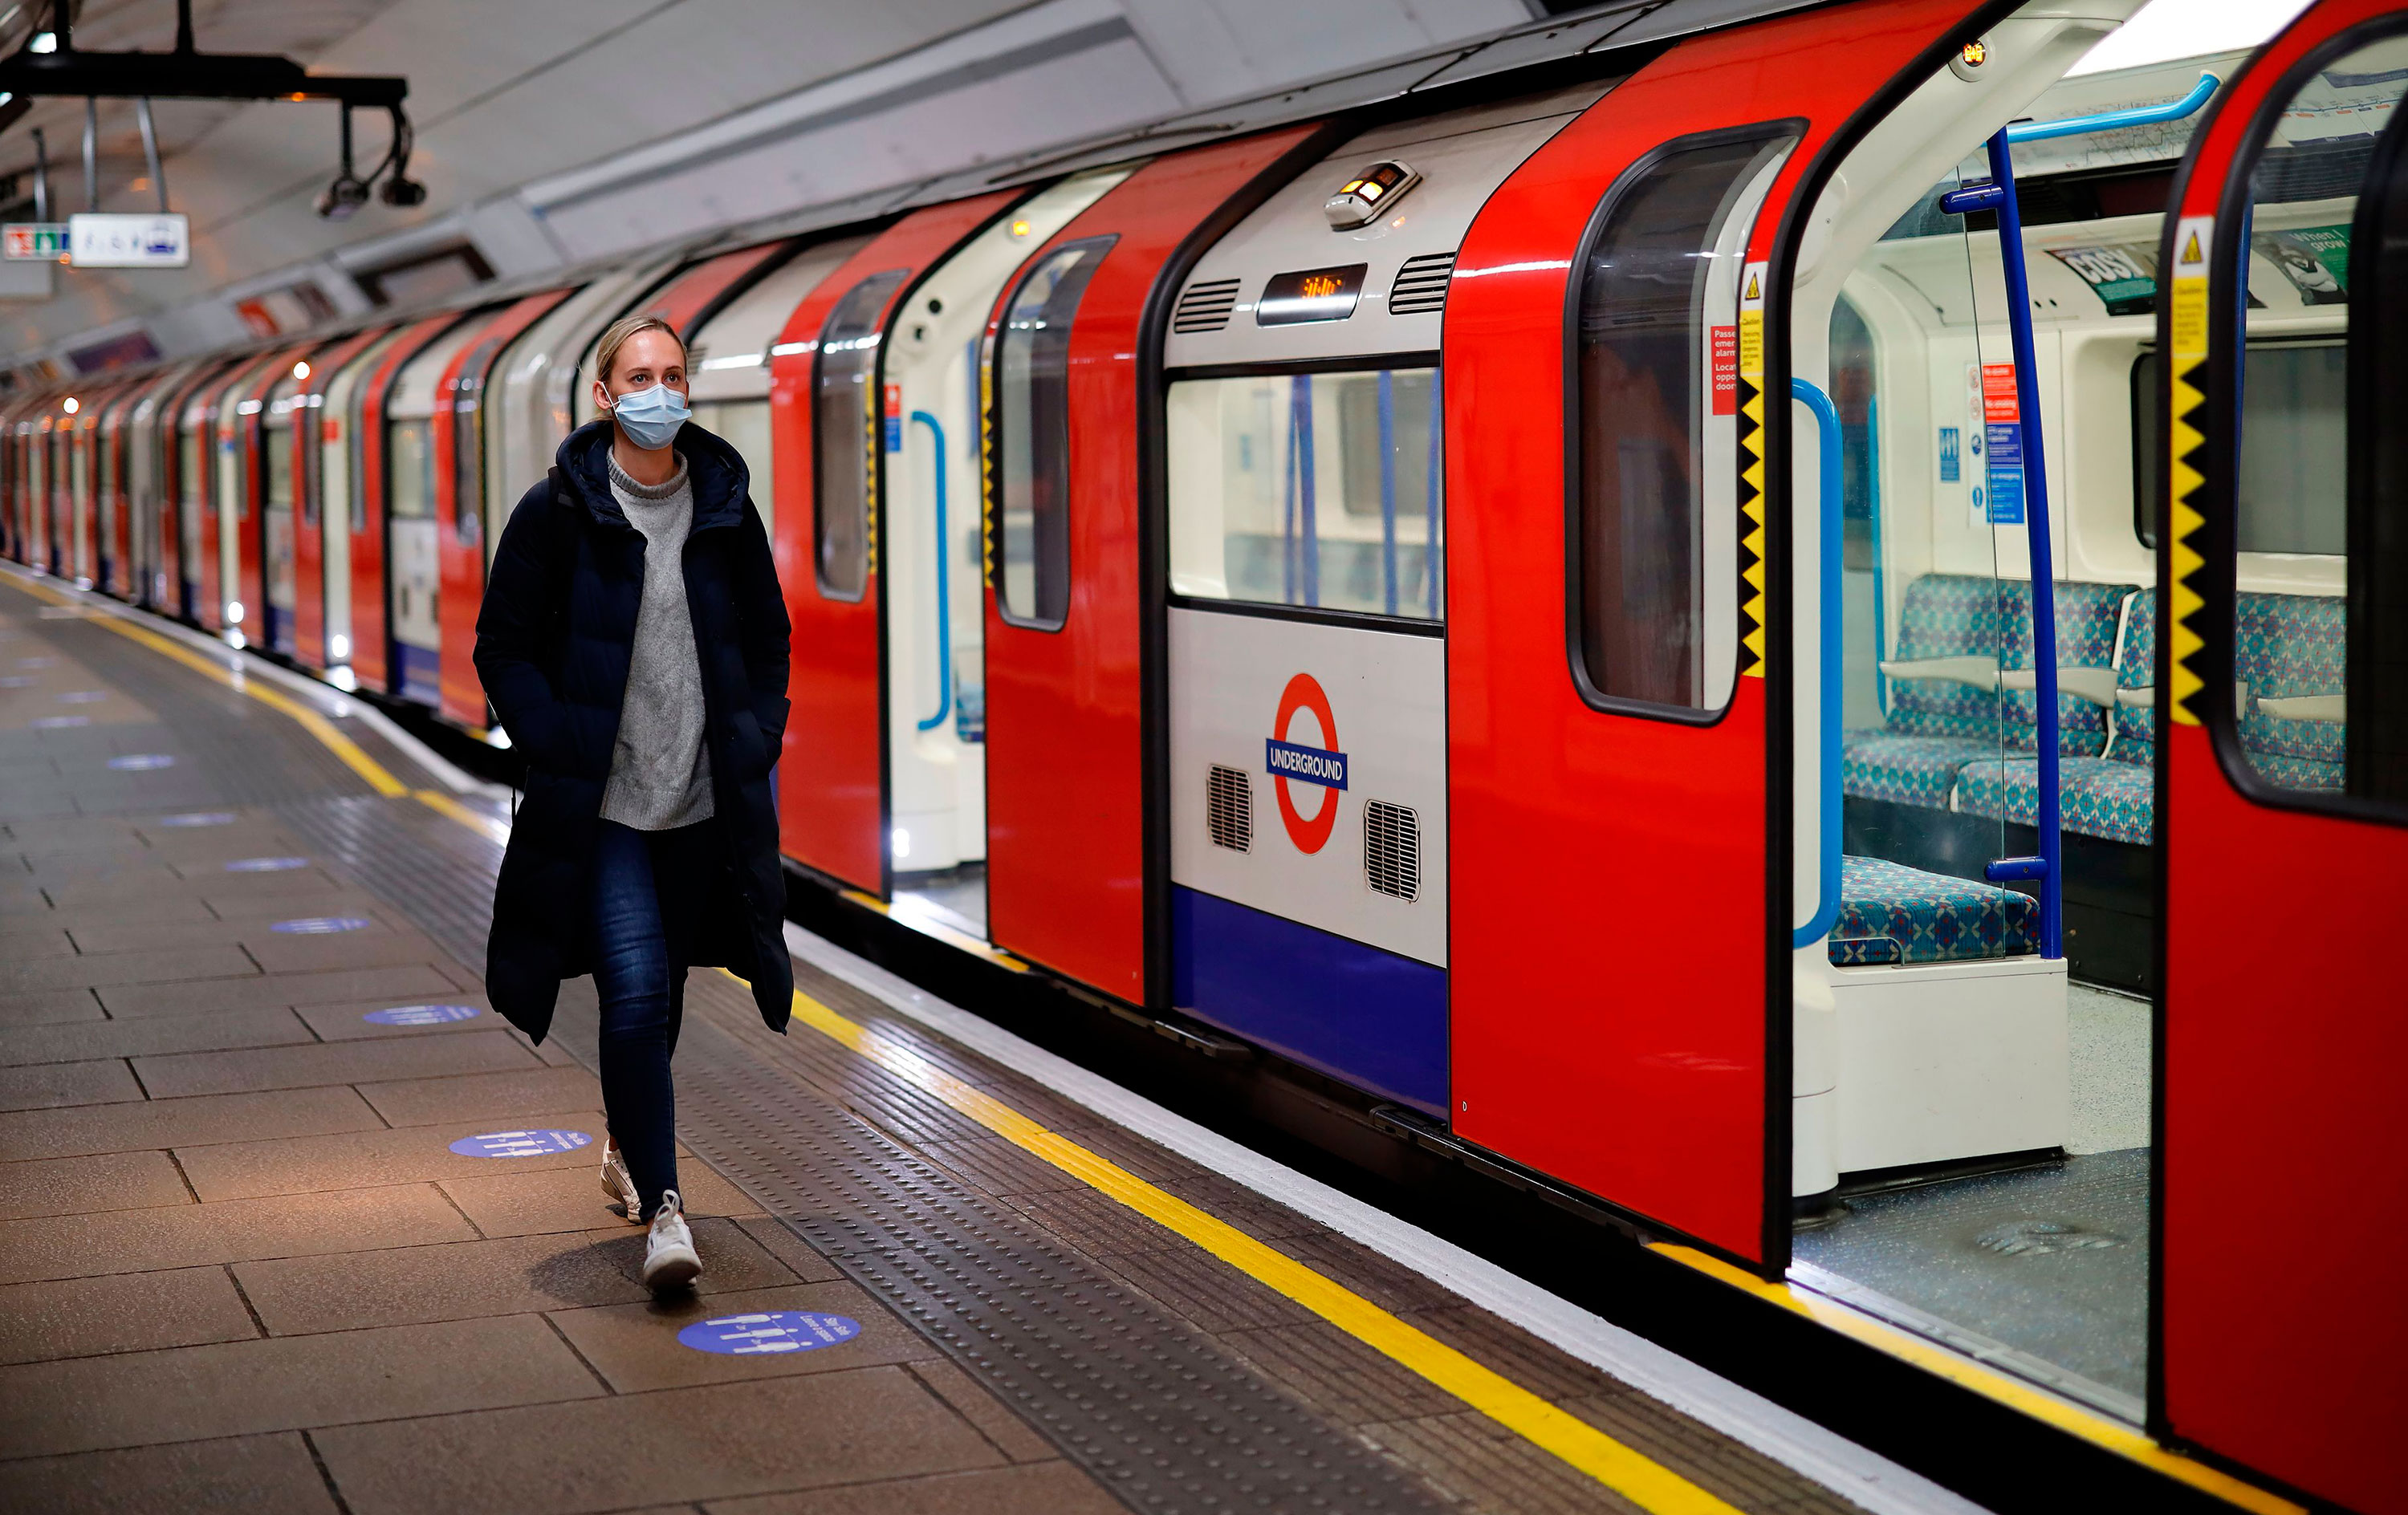 A woman walks along a London Underground platform on May 11 in London.